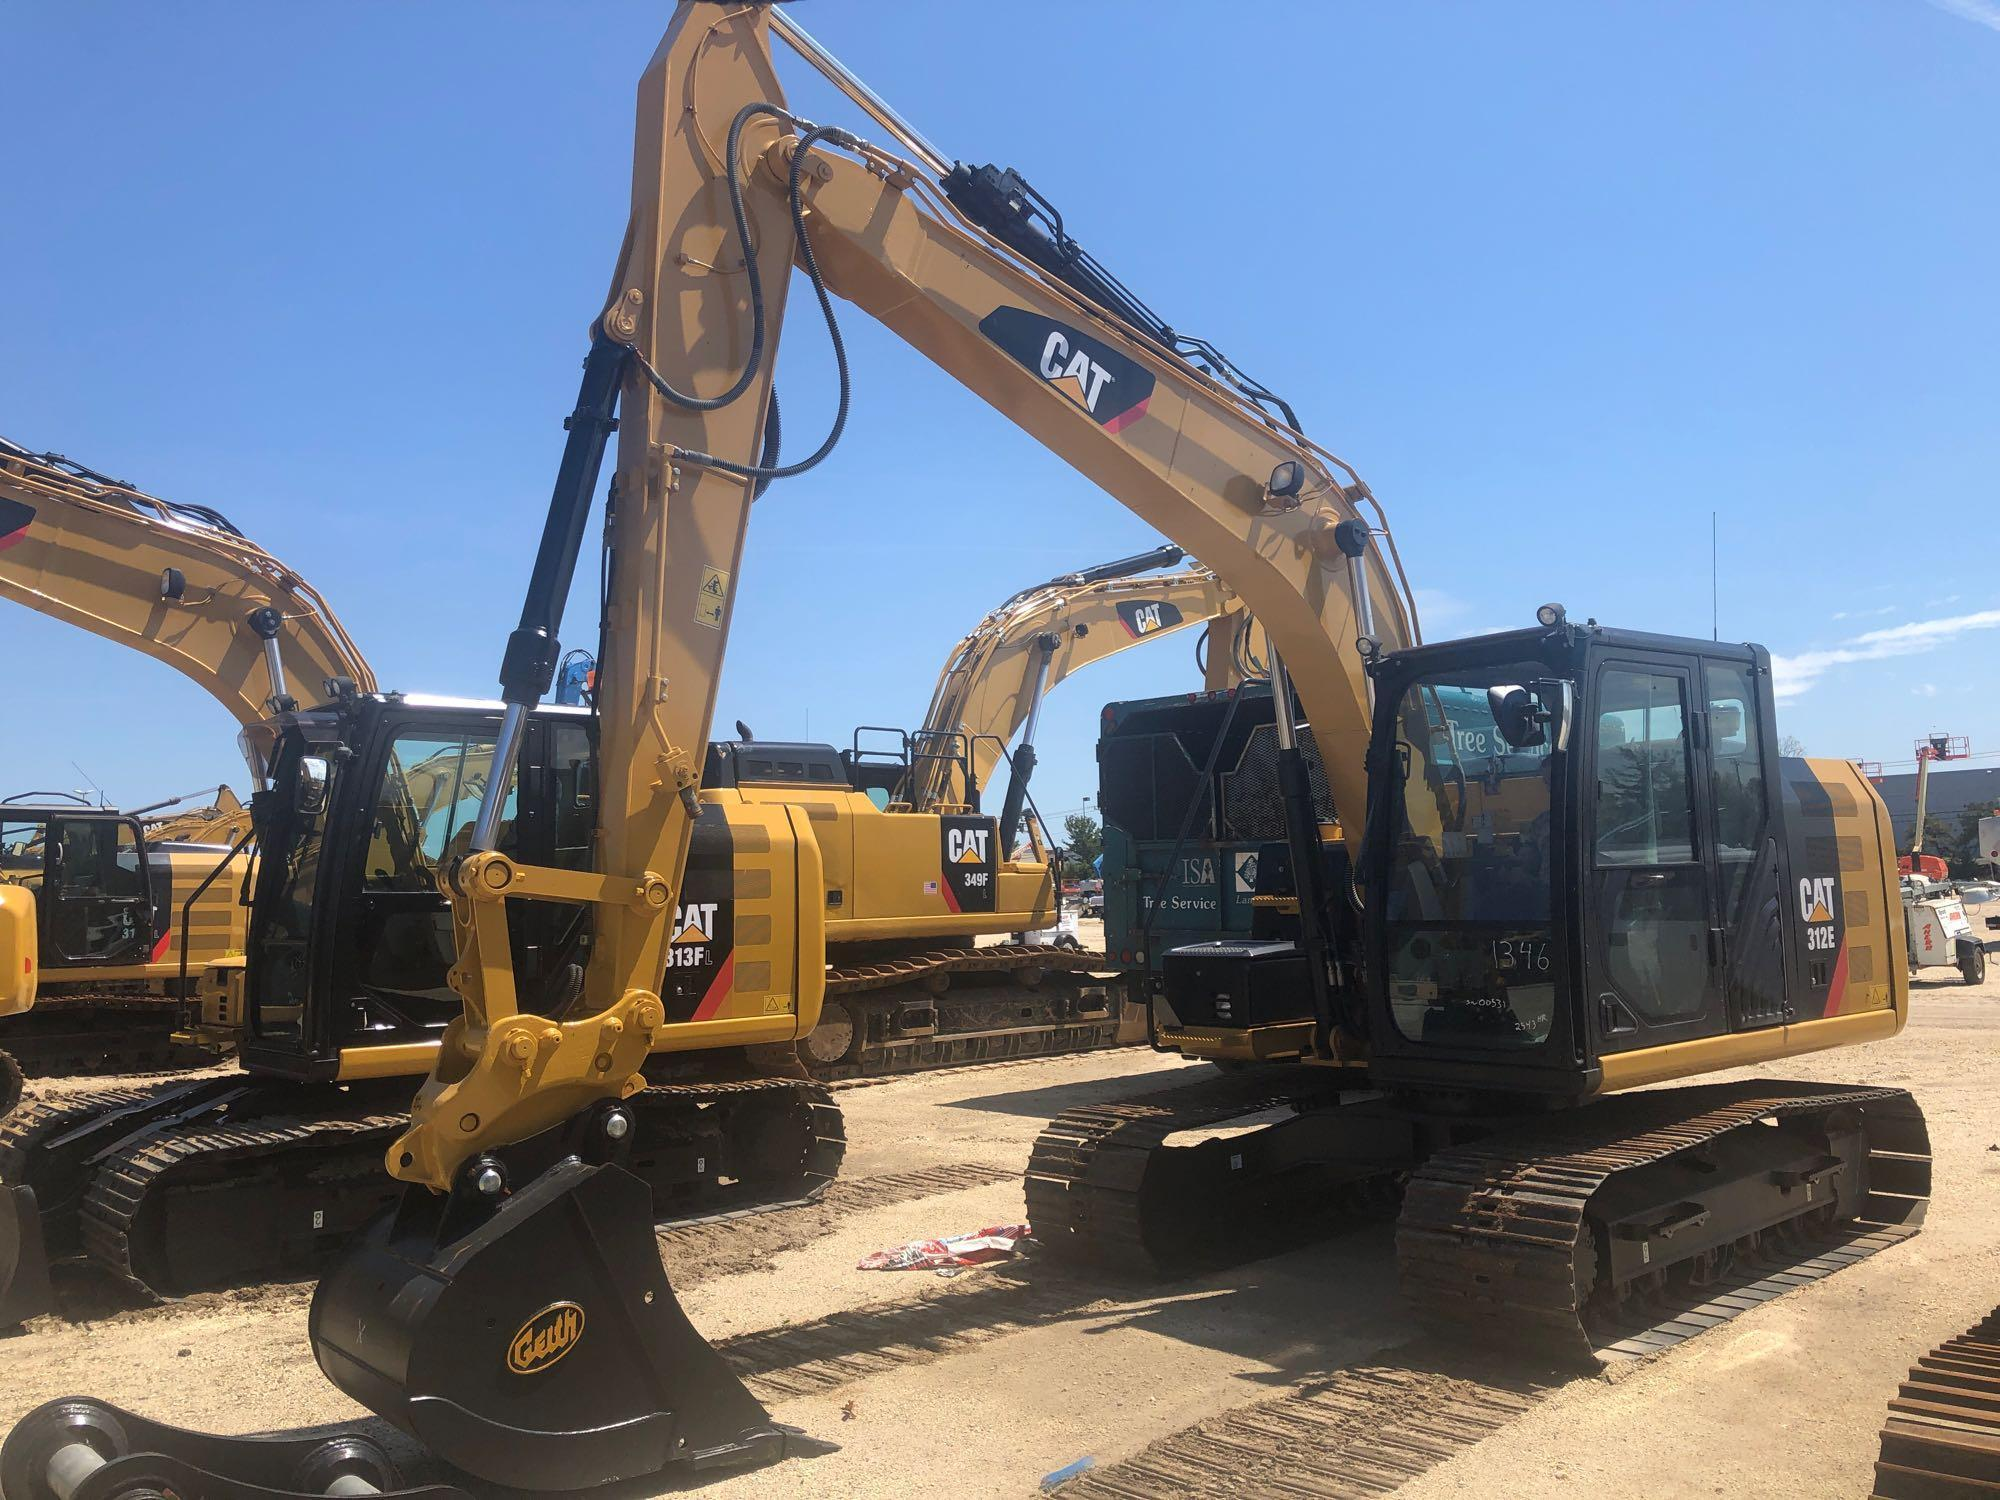 2015 CAT 312E HYDRAULIC EXCAVATOR Powered By Cat